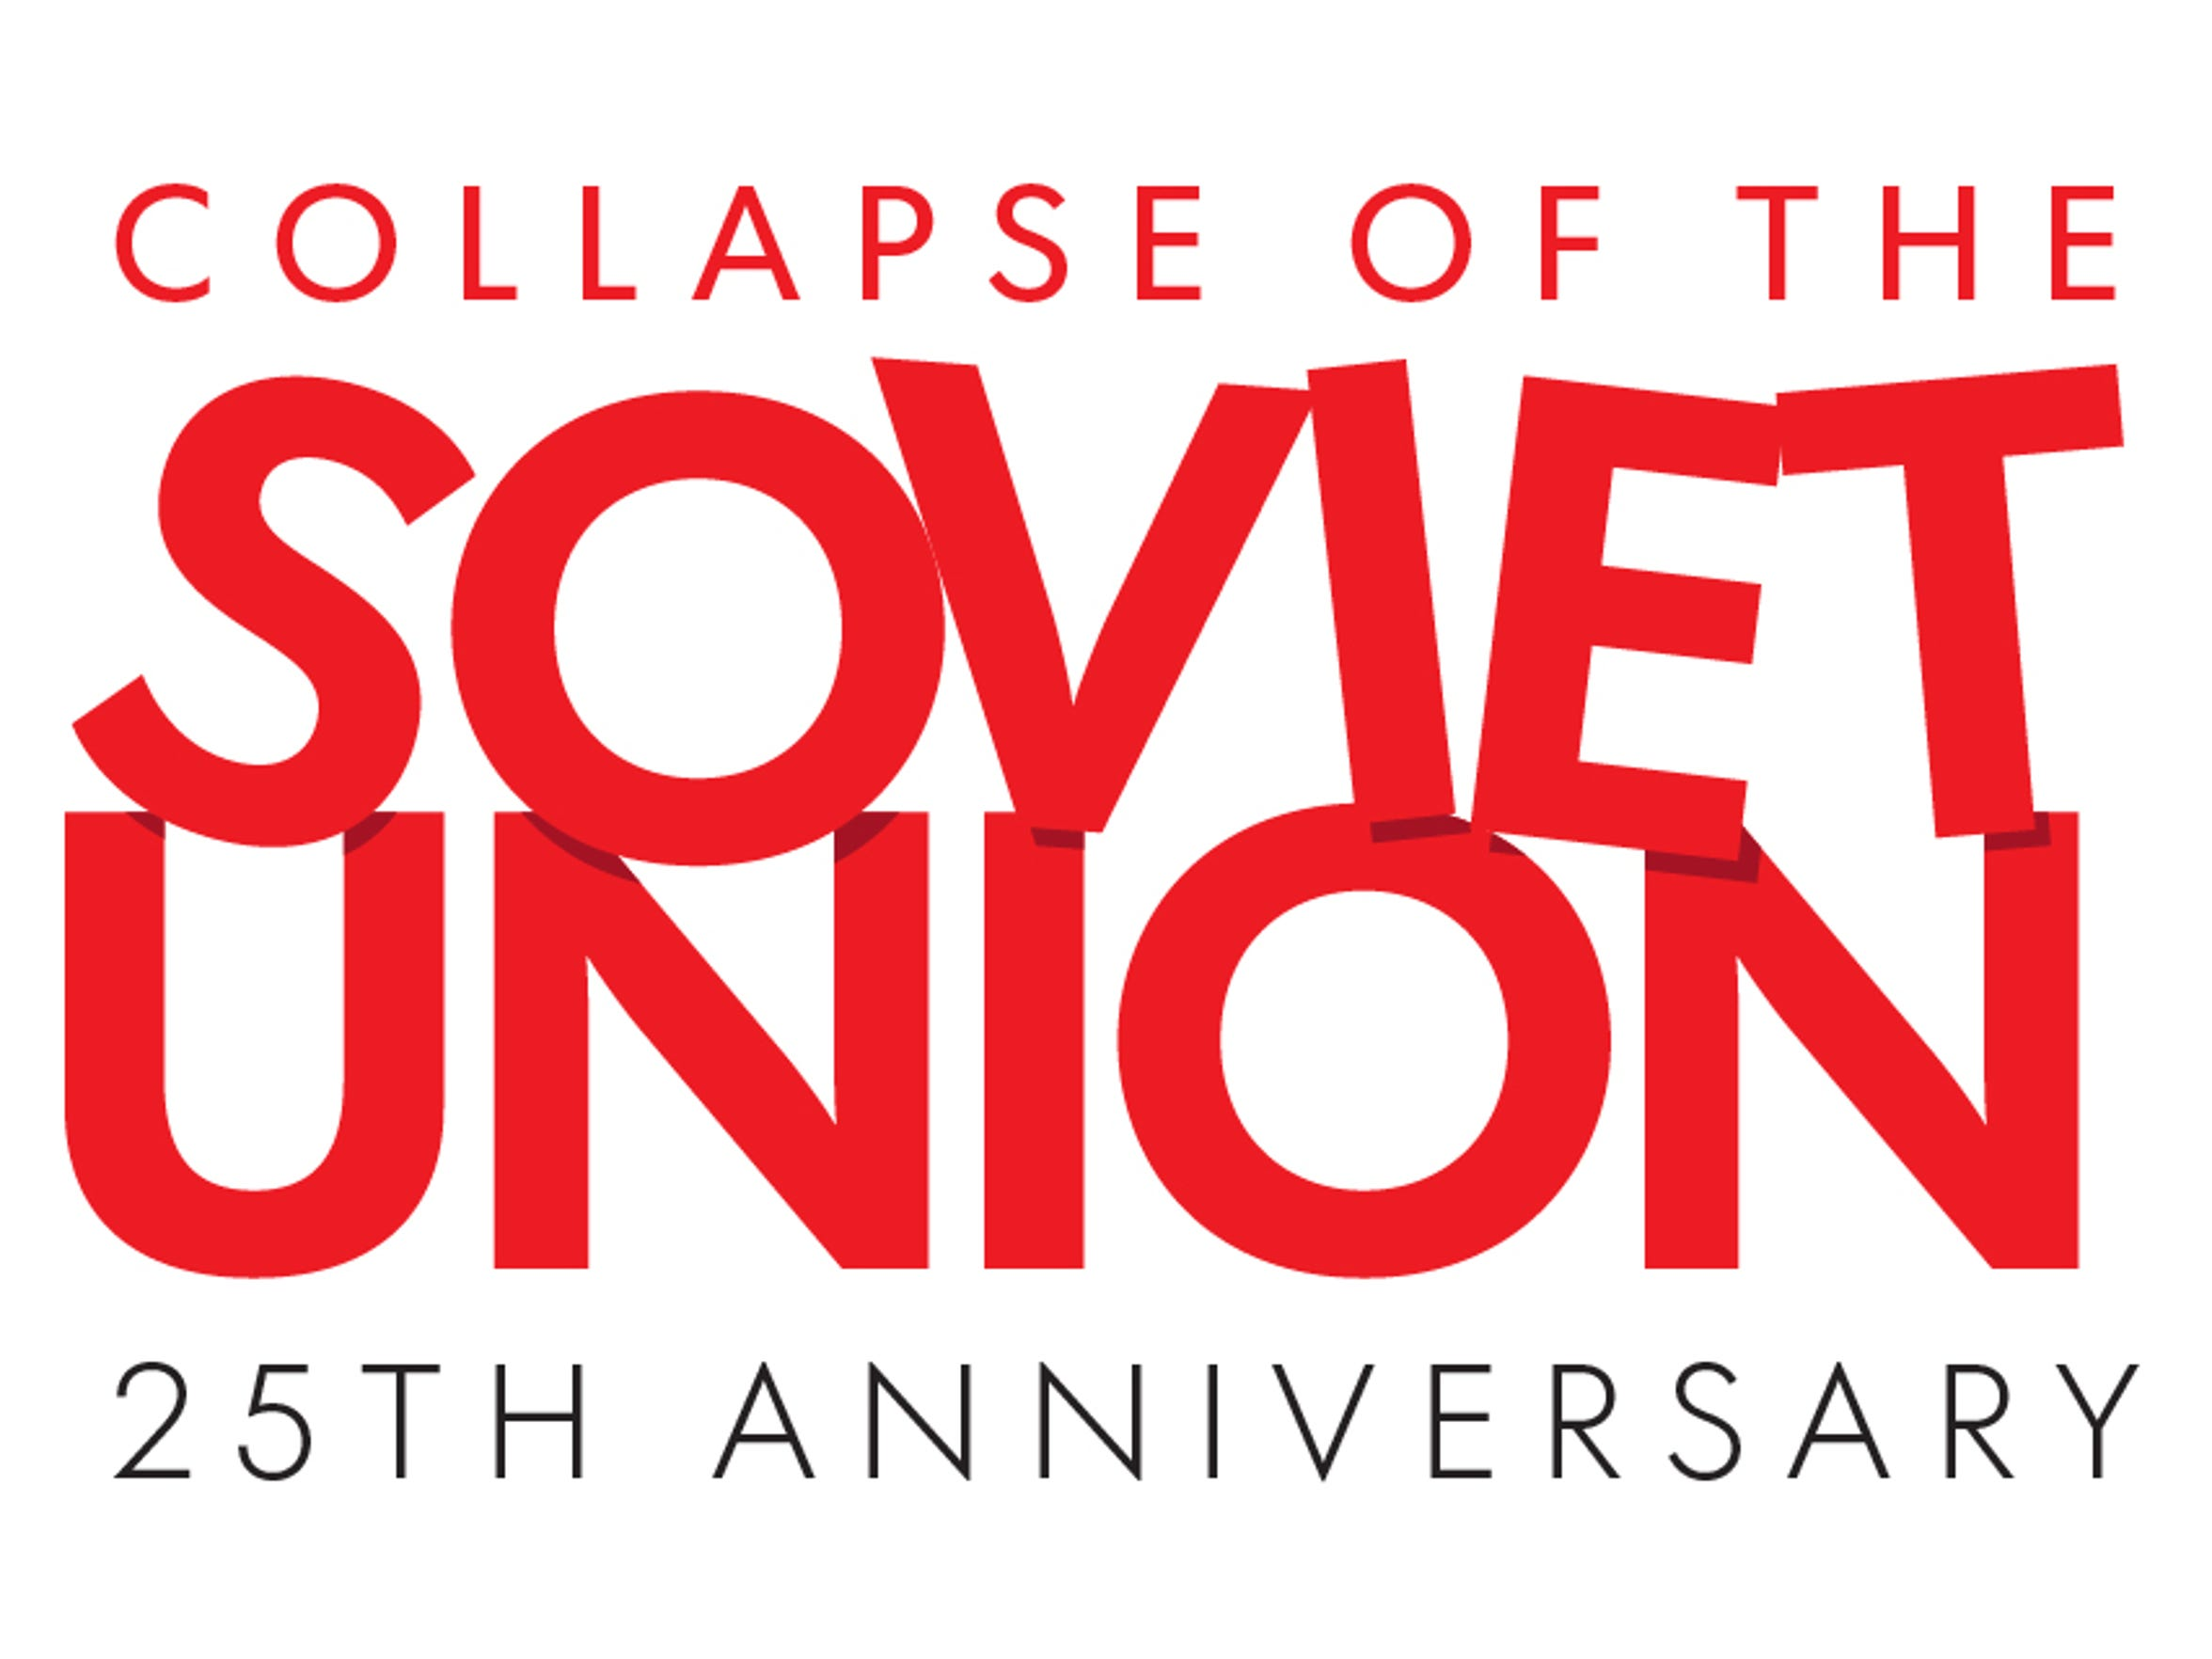 Collapse of the Soviet Union 25th anniversary.